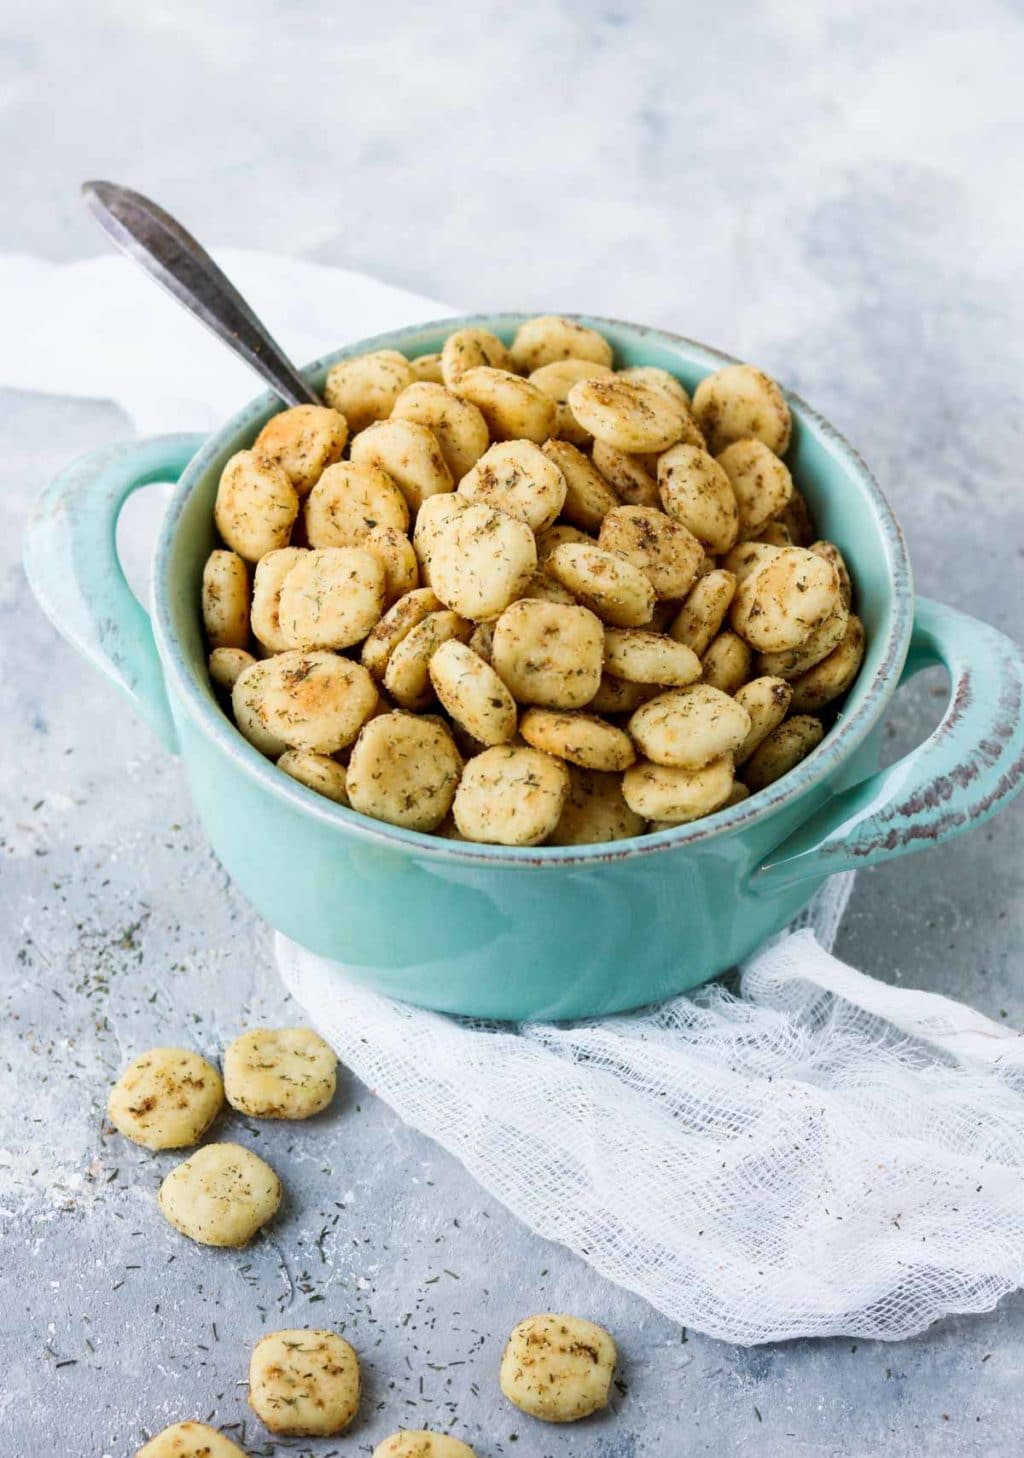 Seasoned oyster crackers in a blue pot with a spoon